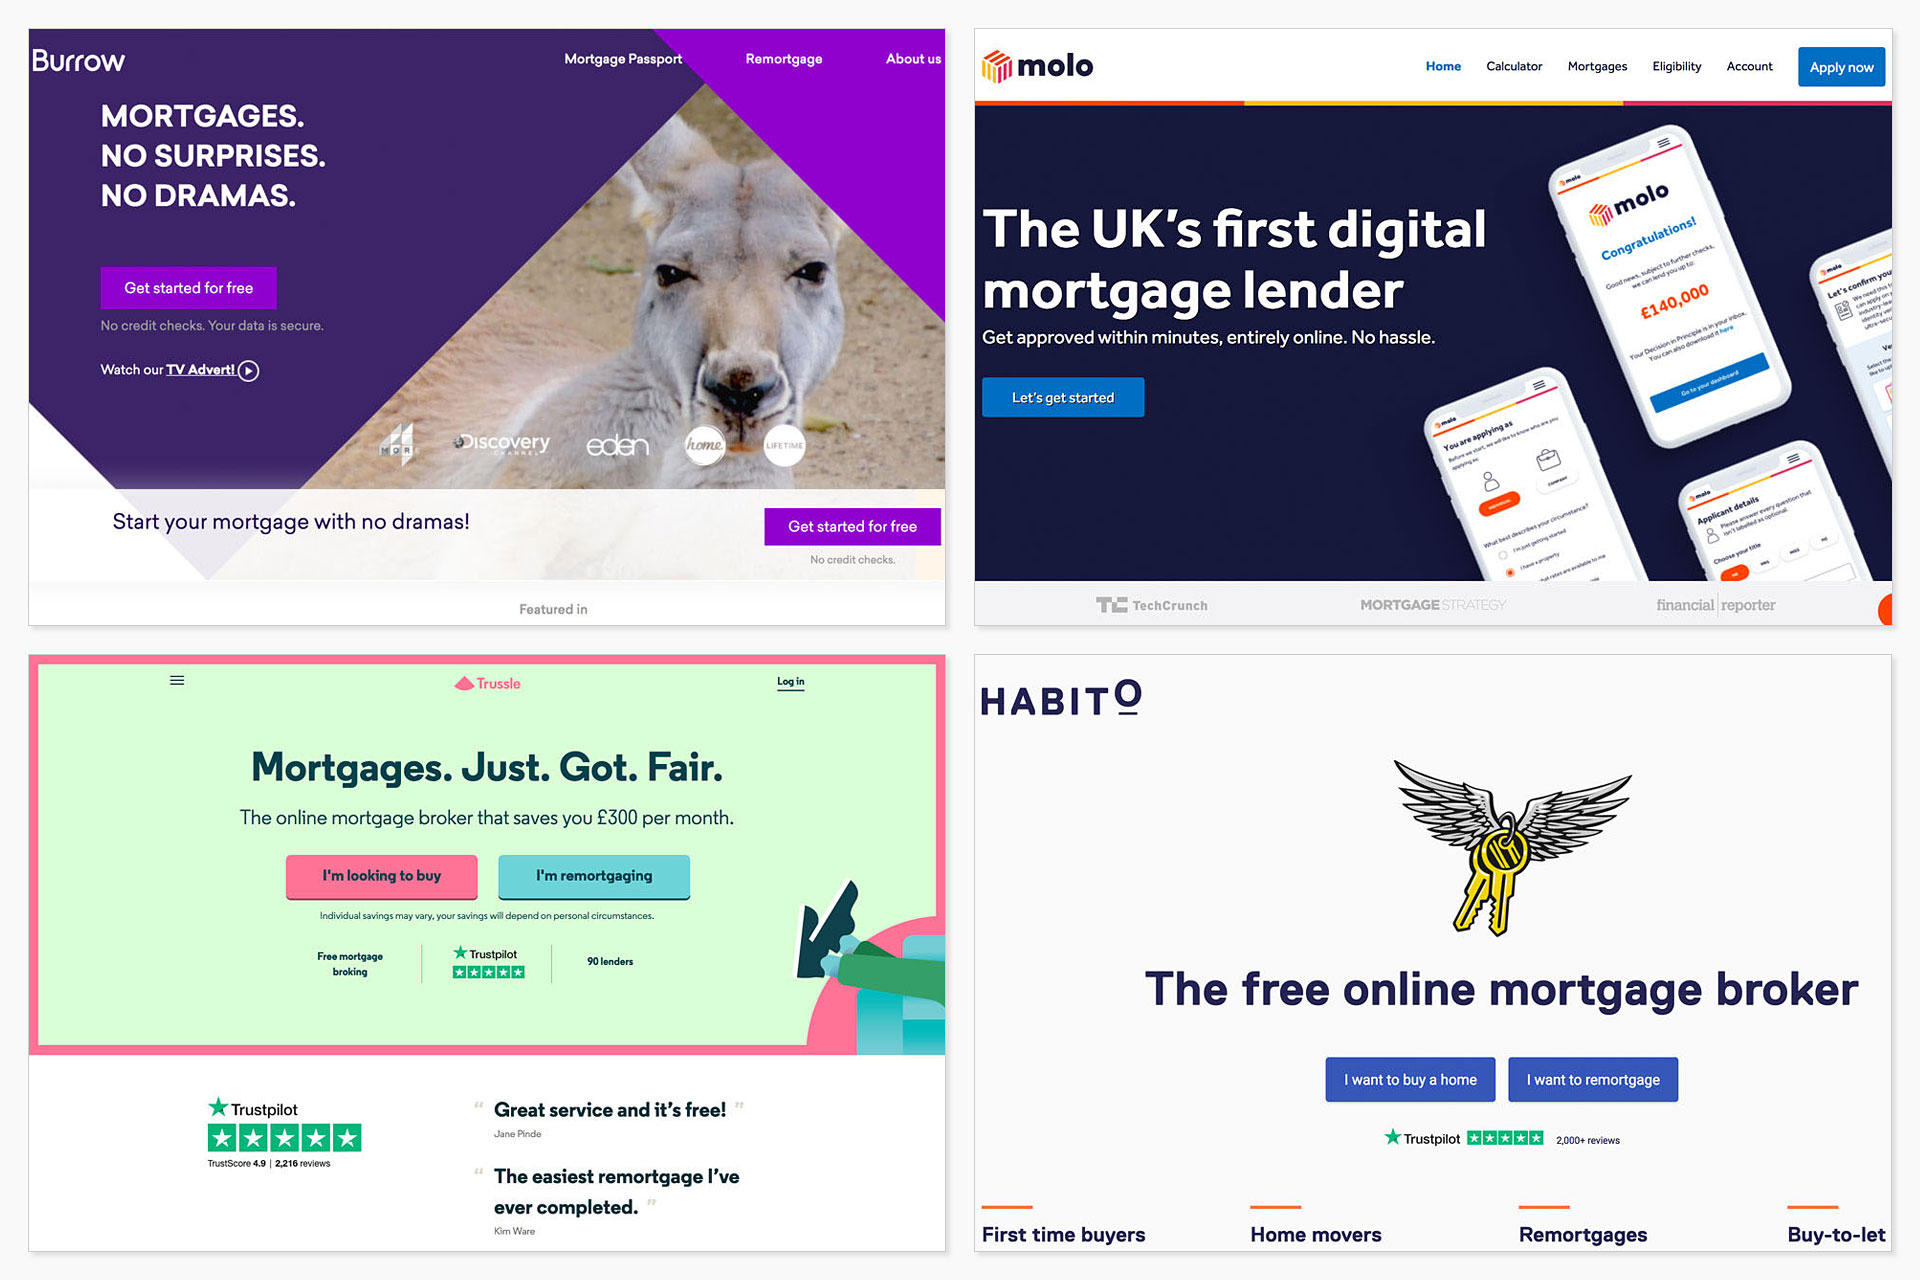 research - gap analysis - homepages